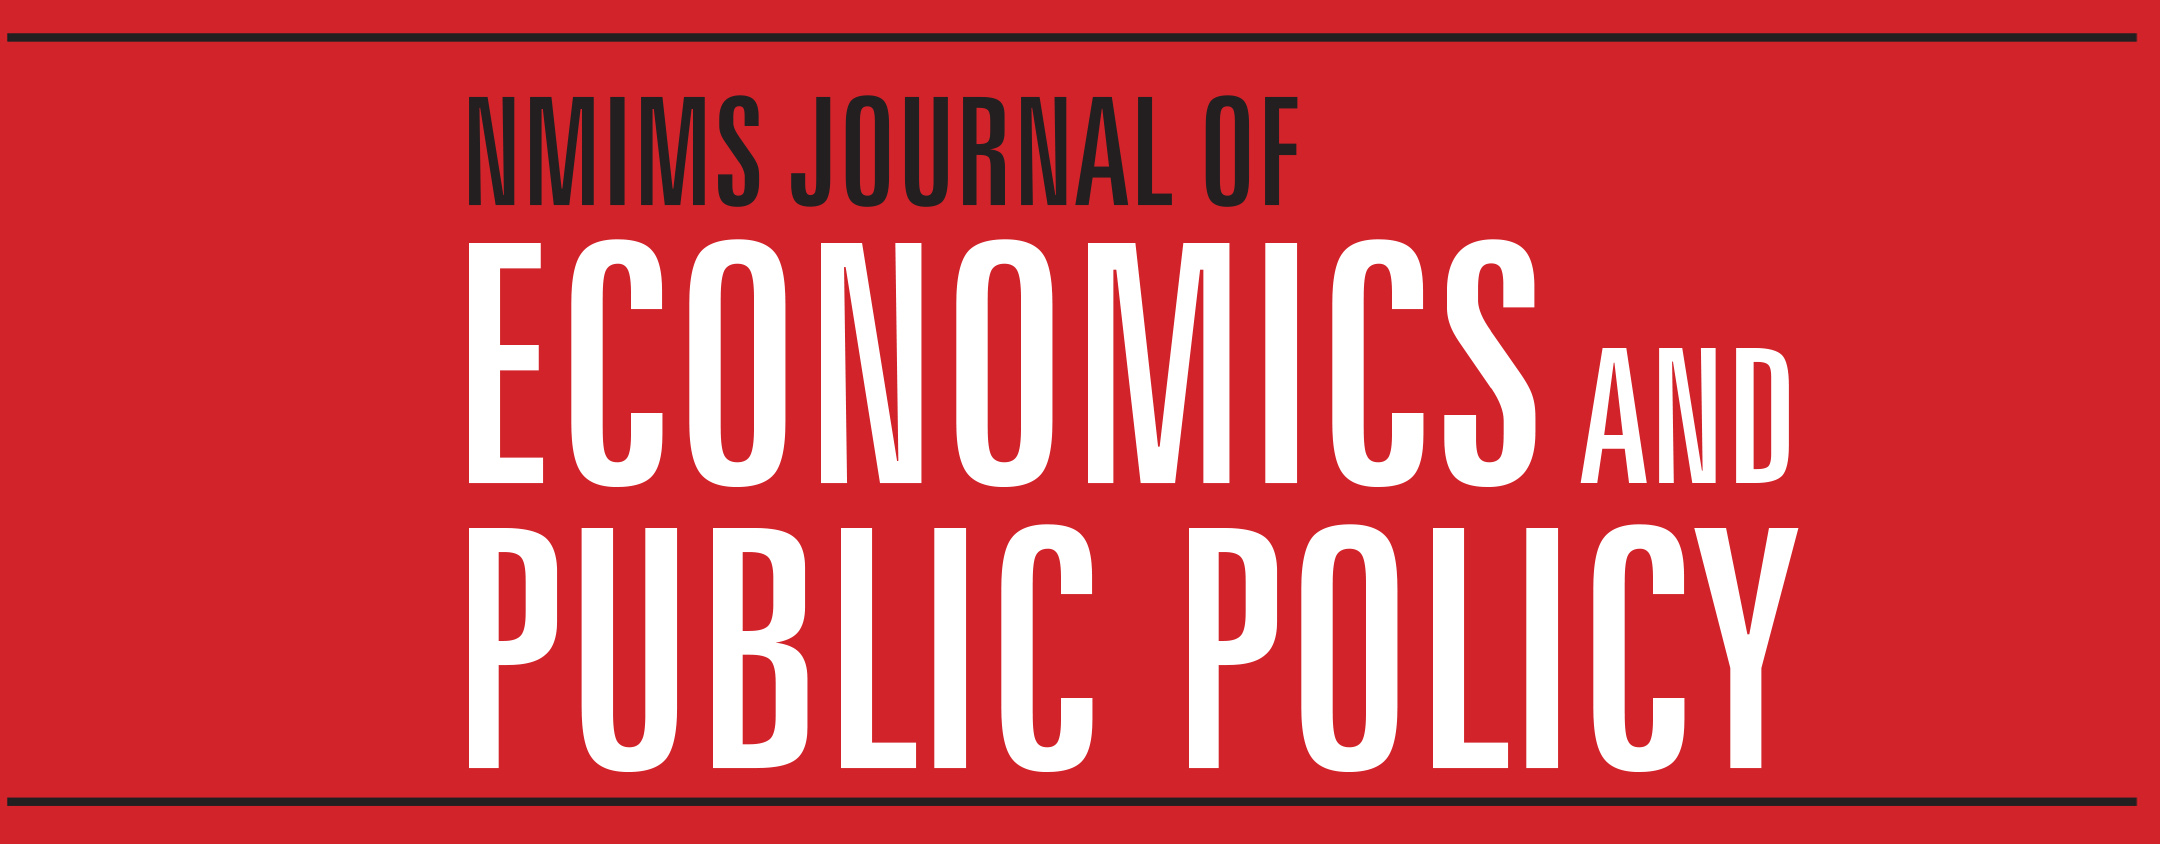 journal of economics and public policy primary menu